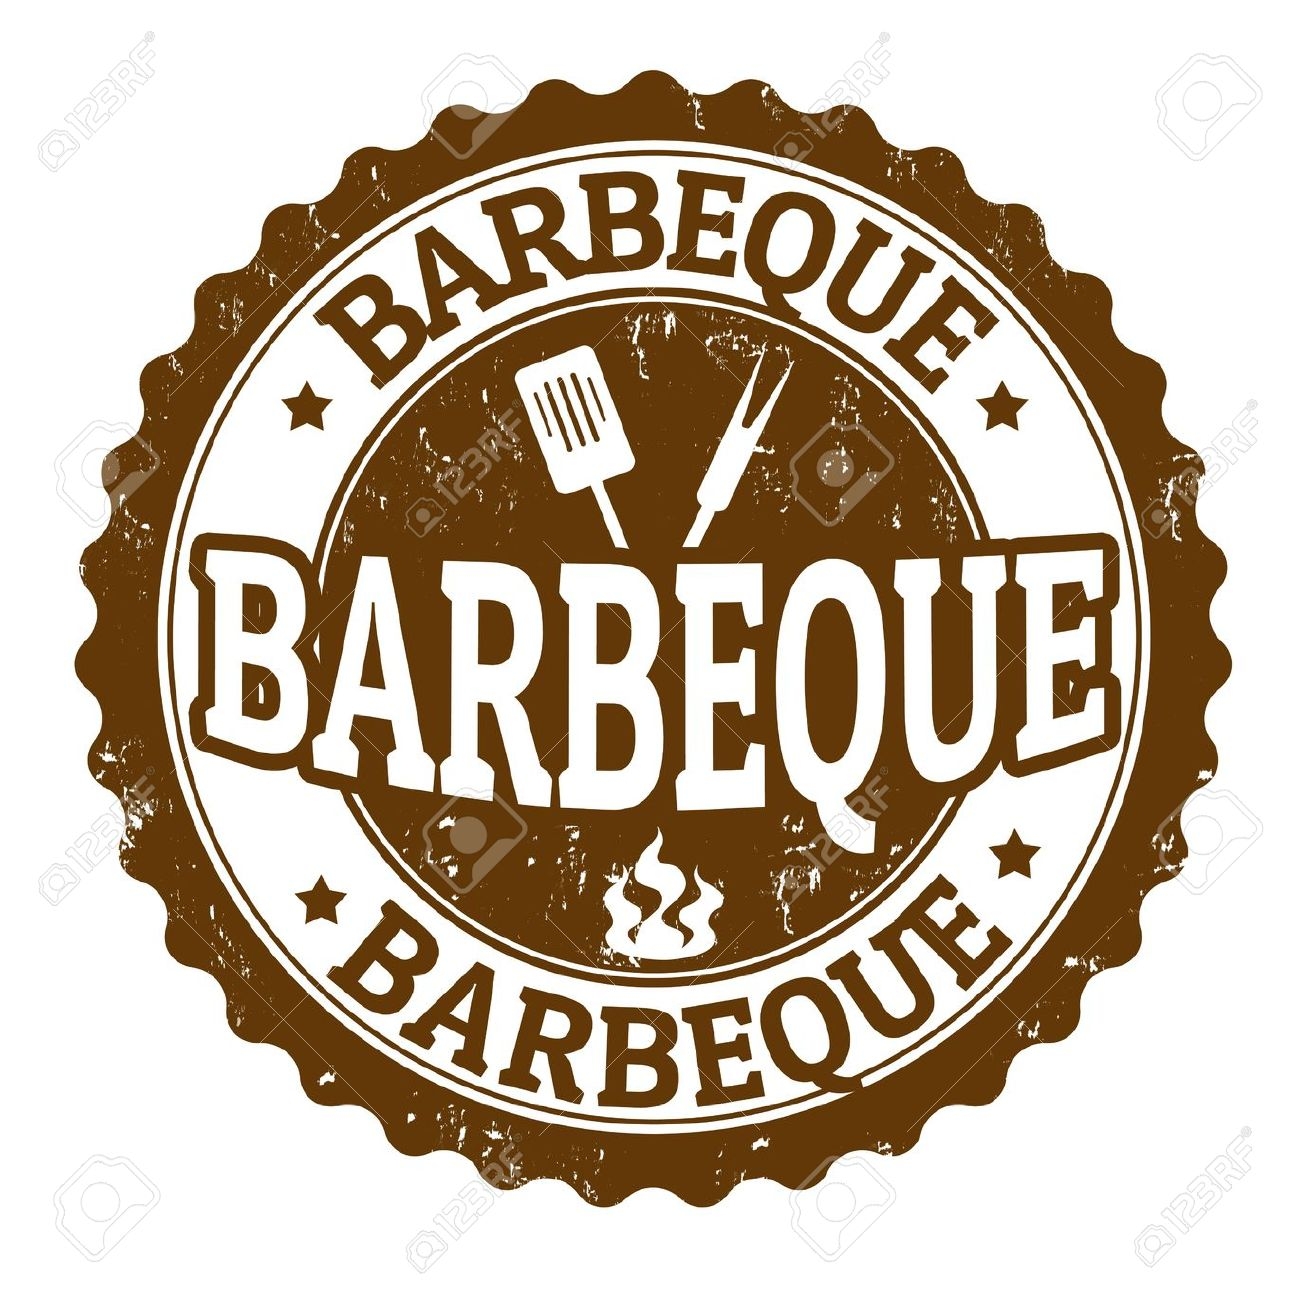 Church bbq clipart free images 2 2